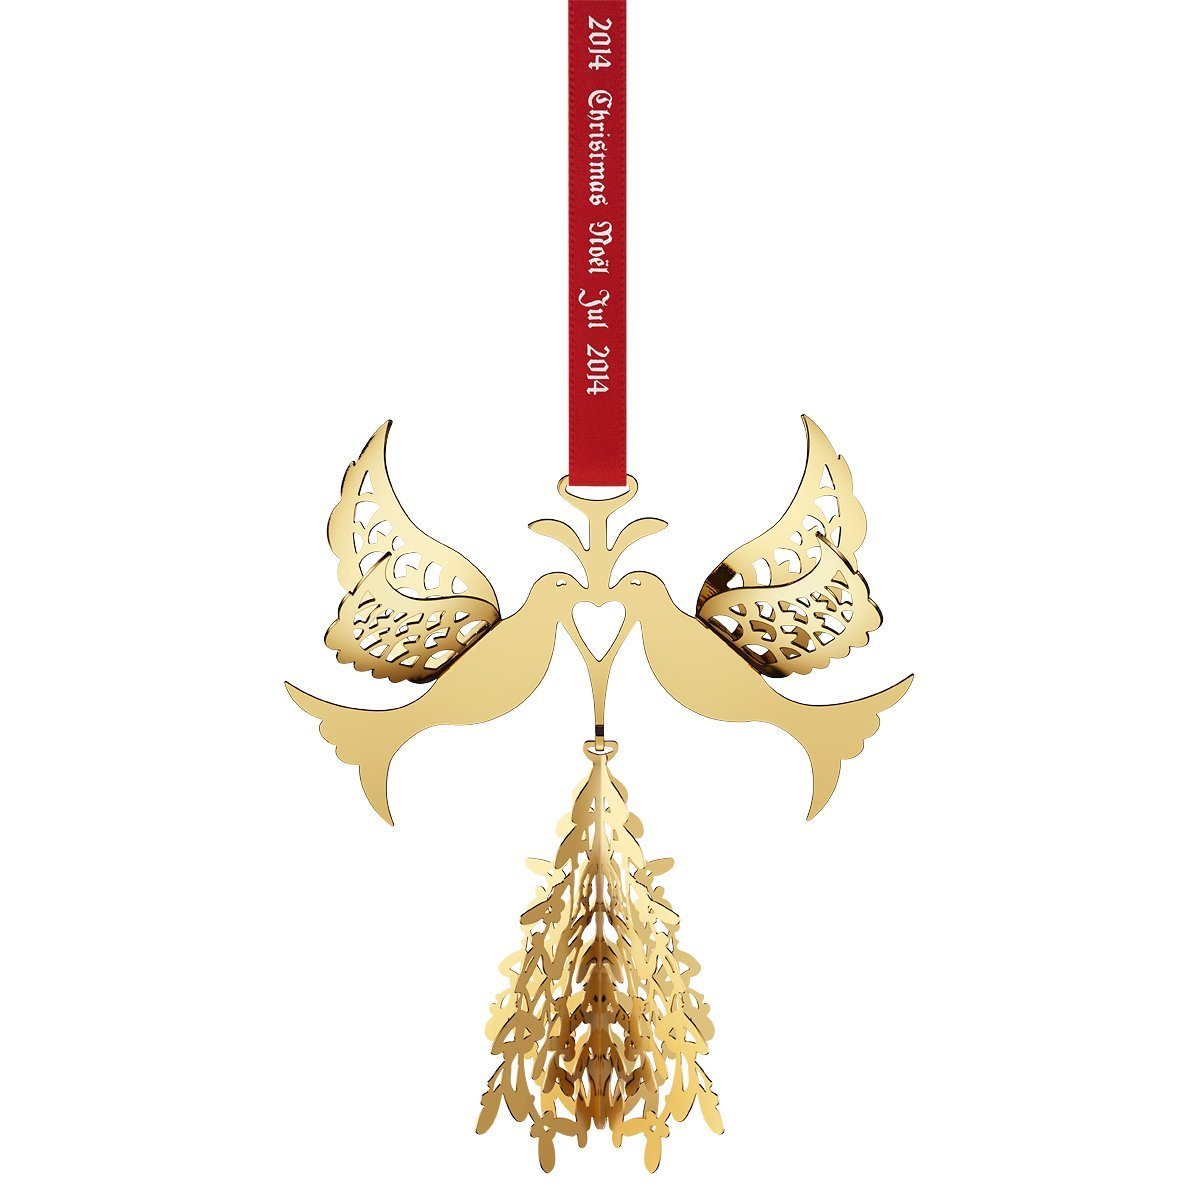 Amazon: Georg Jensen 2014 Christmas Mobile  Fir Tree & Doves, Gold  Plated: Home & Kitchen